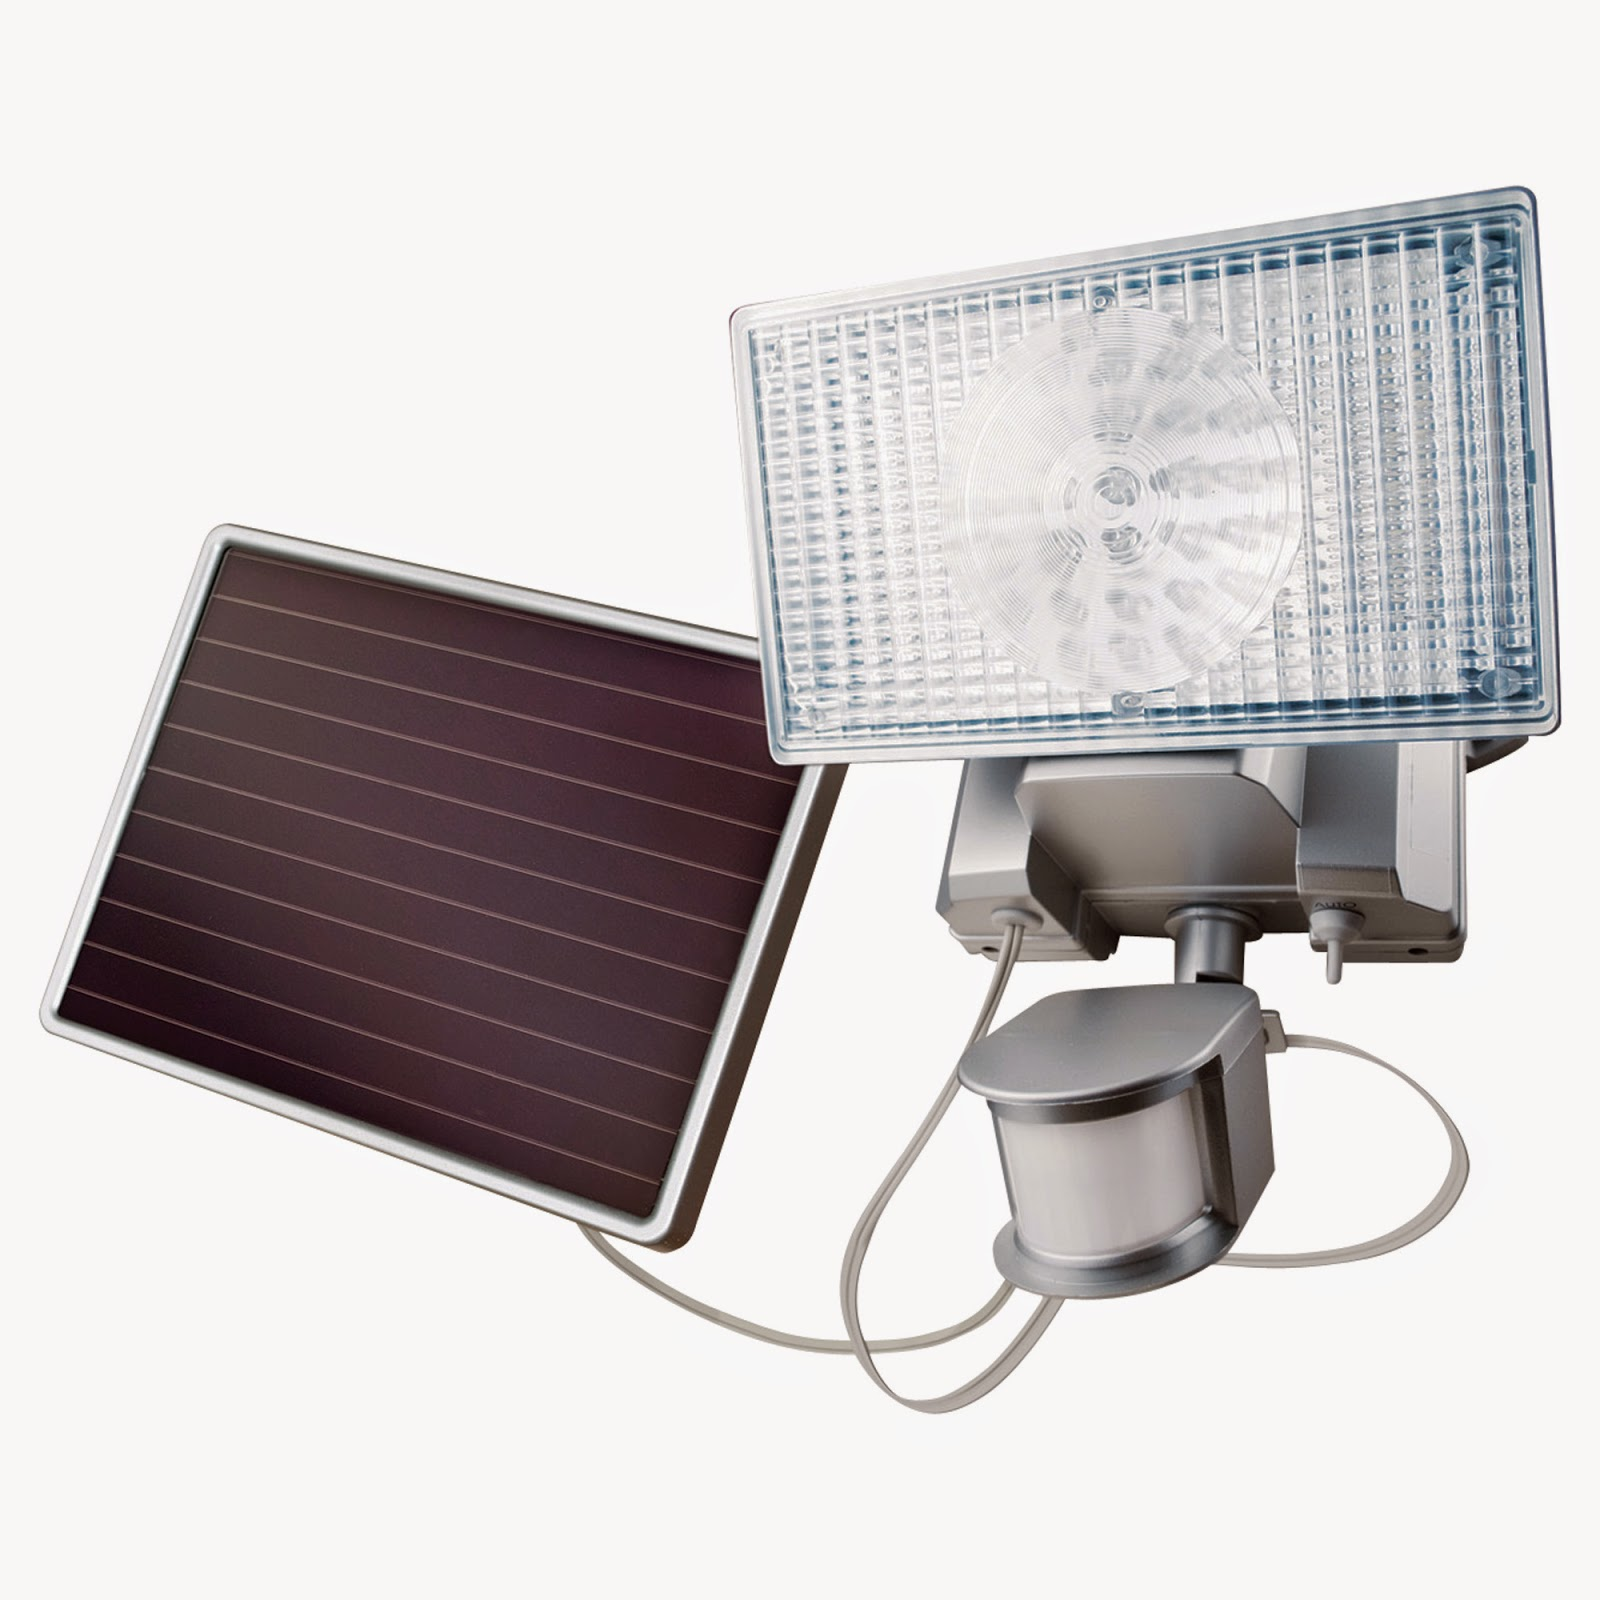 Standard lighting solar panel